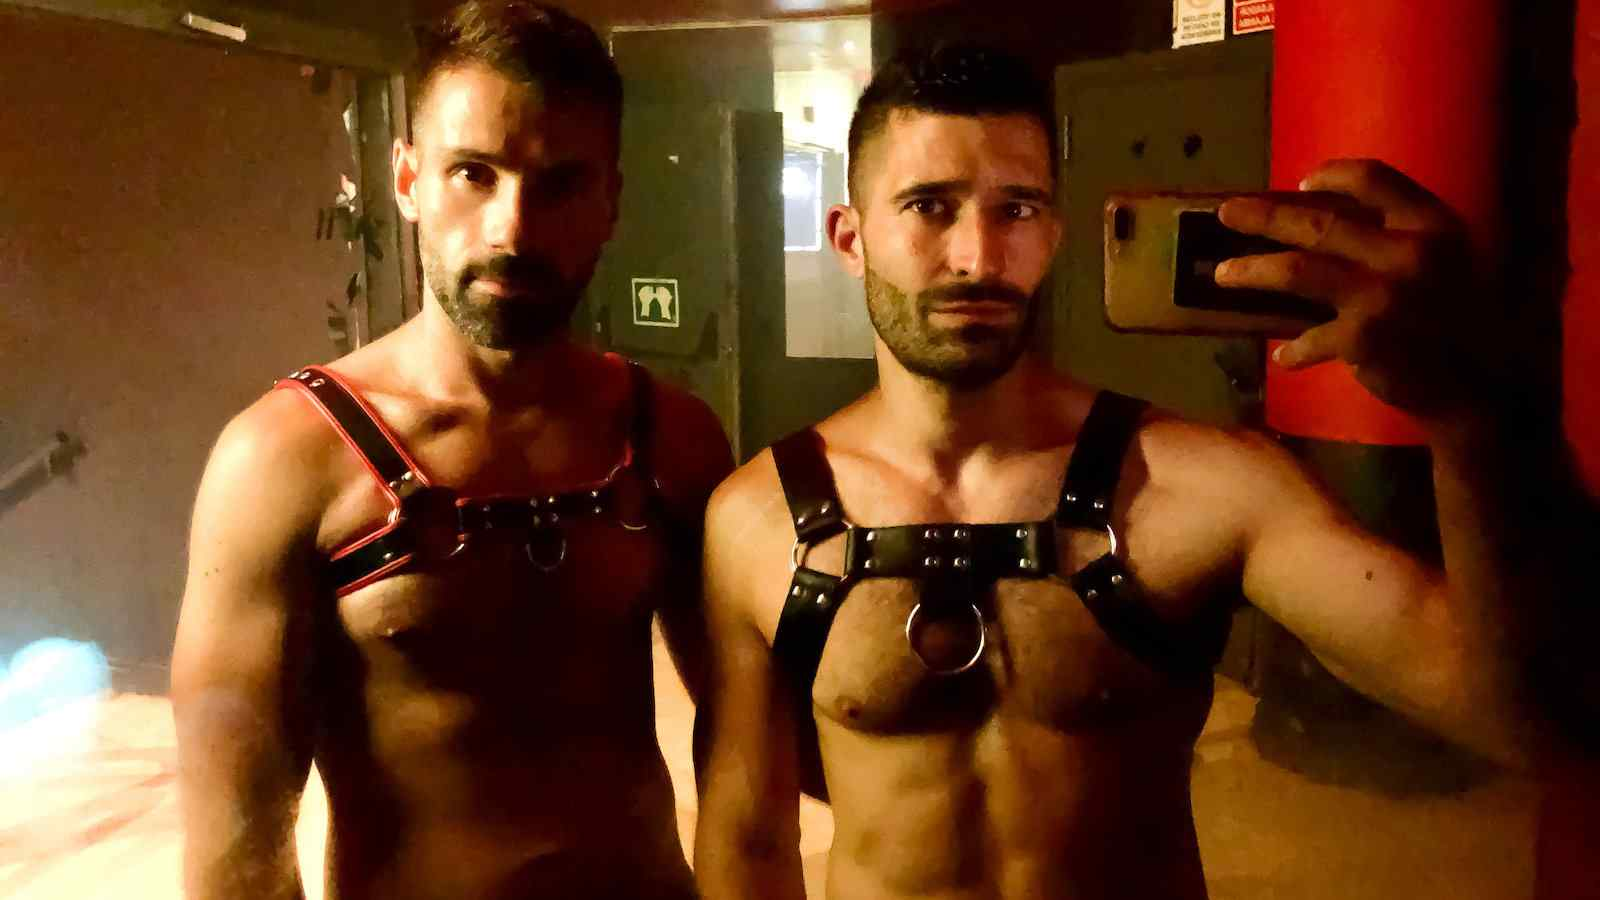 Harnesses are one type of sex toy you can travel with fairly easily